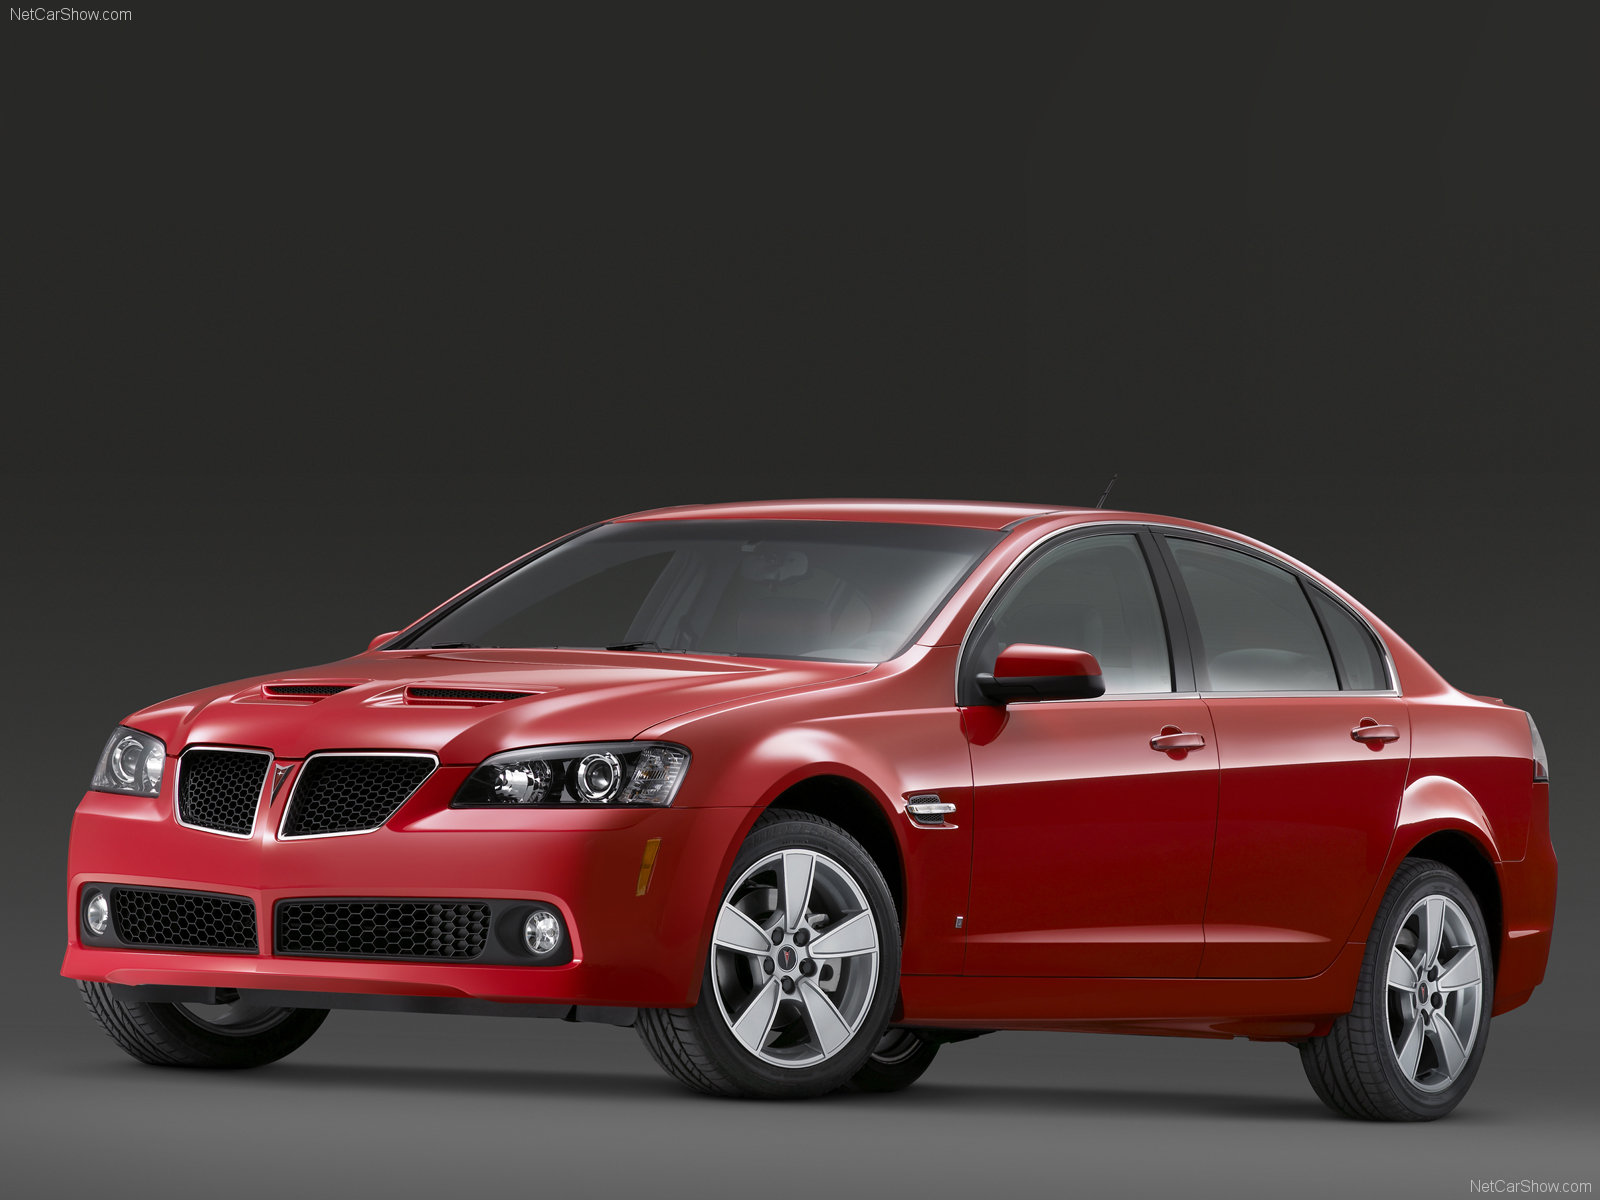 2019 Pontiac G8 GT Show Car photo - 3